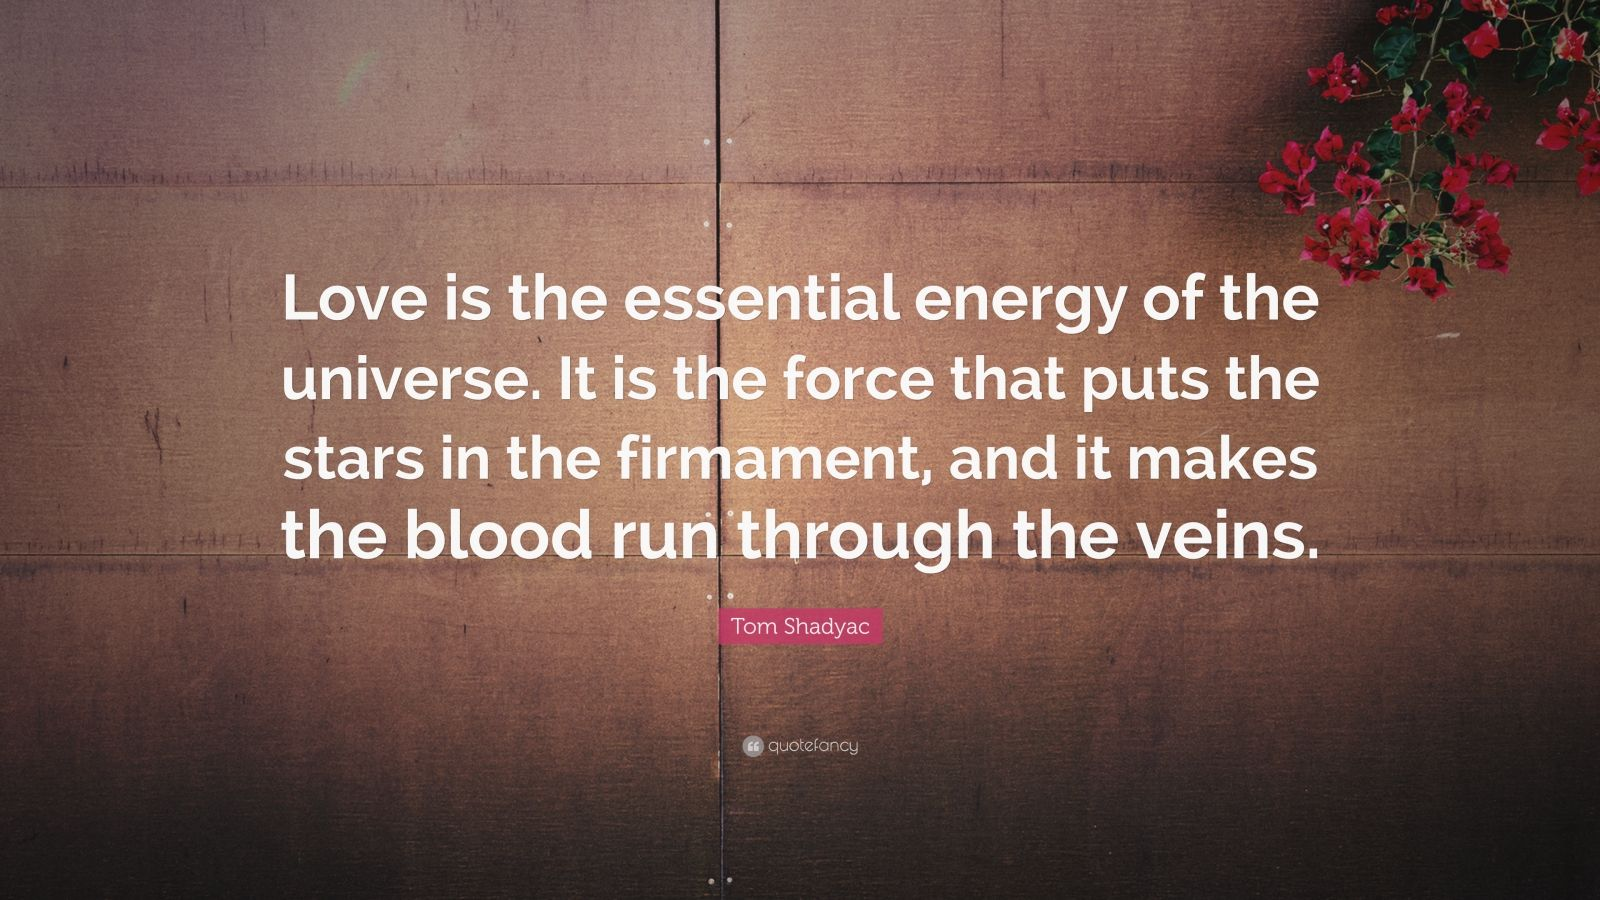 """Tom Shadyac Quote: """"Love is the essential energy of the universe. It is the force that puts the stars in the firmament, and it makes the blood run through the veins."""""""